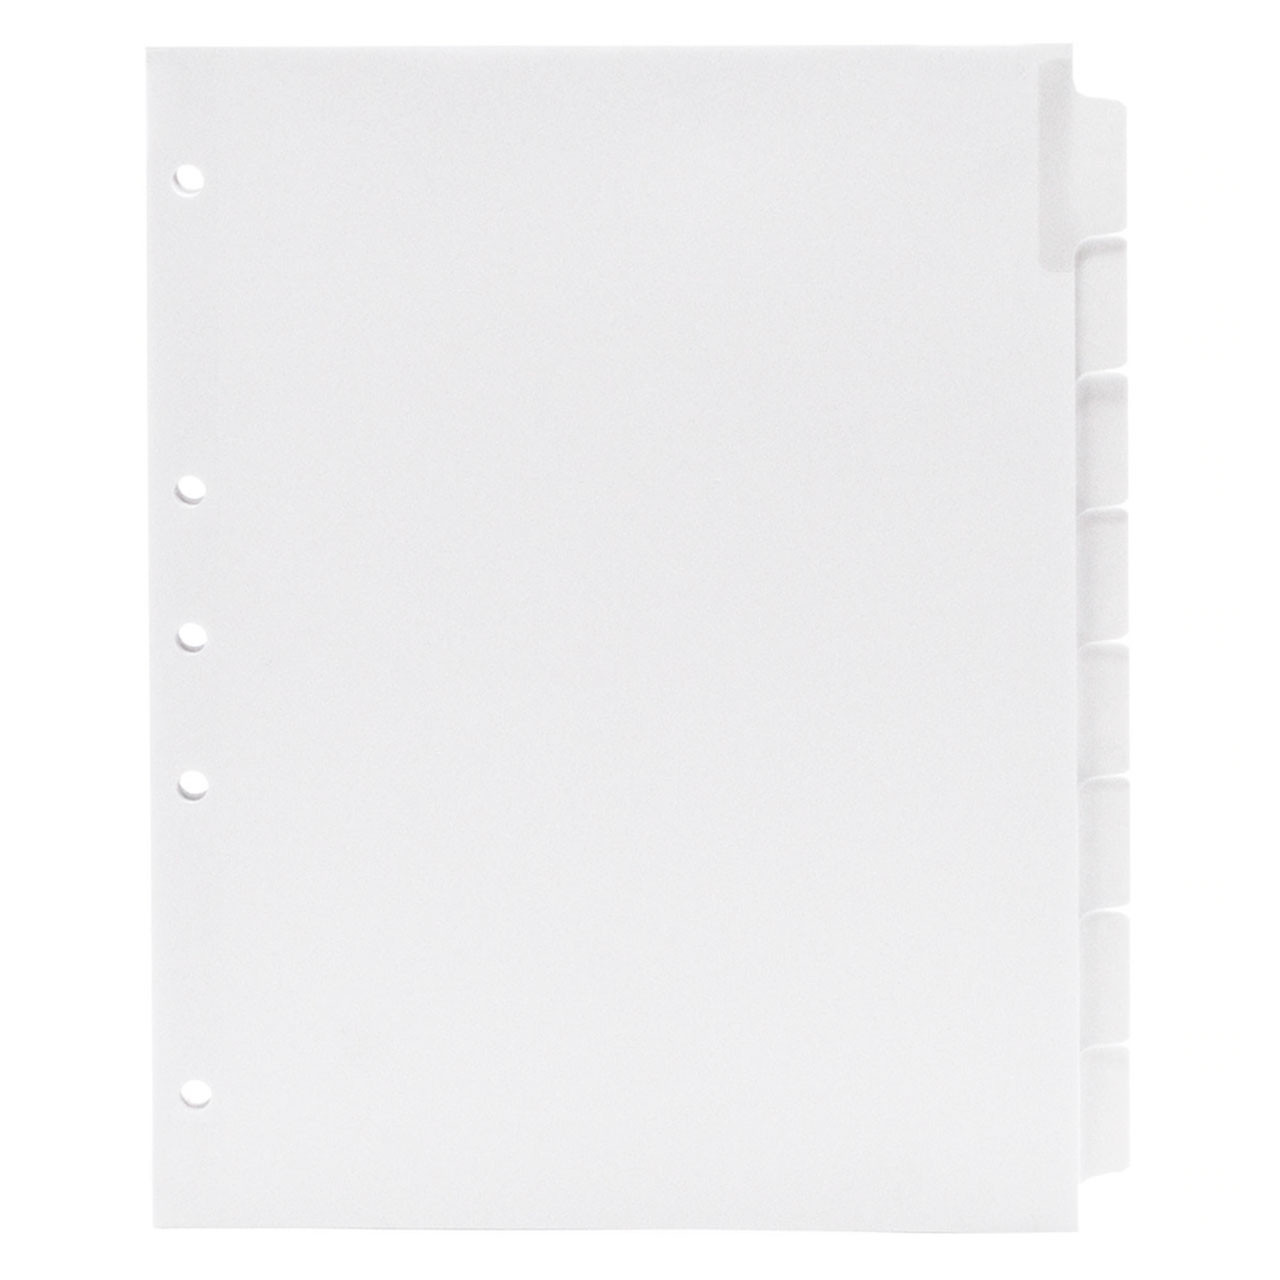 Blank Write-On Index Tab Dividers, 21-Tab Set With 8 Tab Divider Template Word